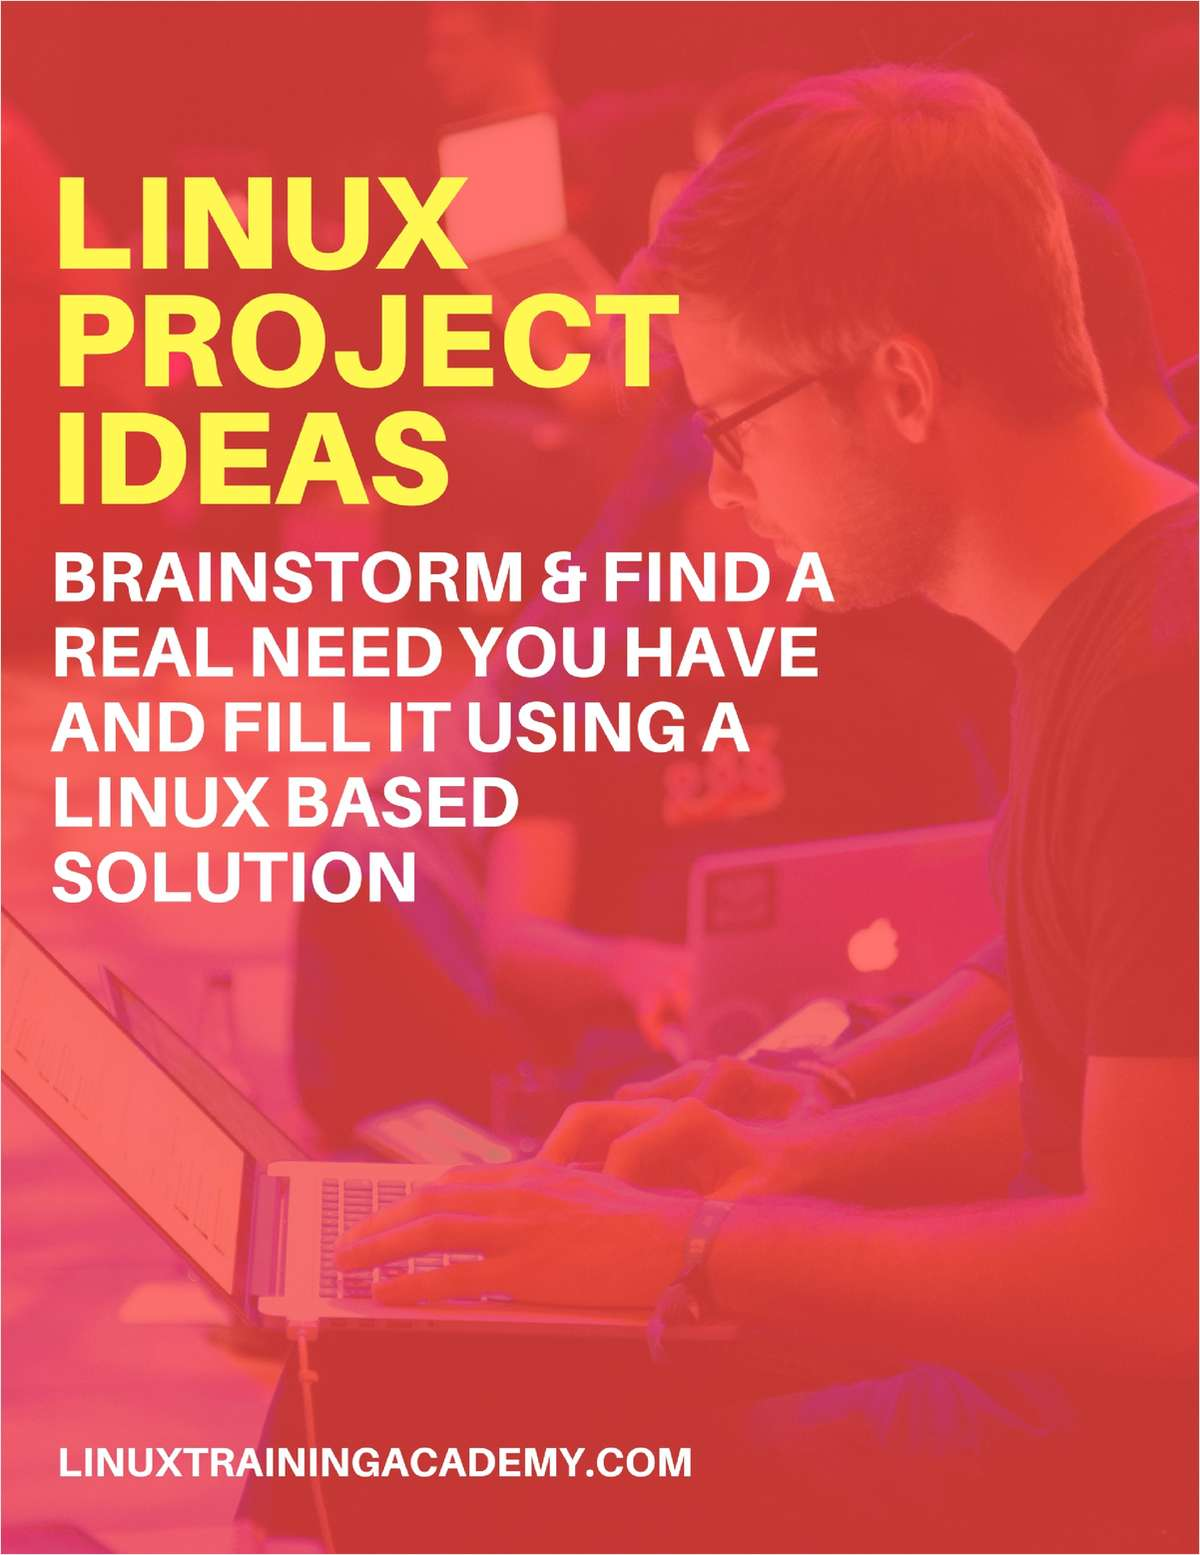 Linux Project Ideas - Brainstorm & Find a Real Need You Have and Fill it Using a Linux Based Solution